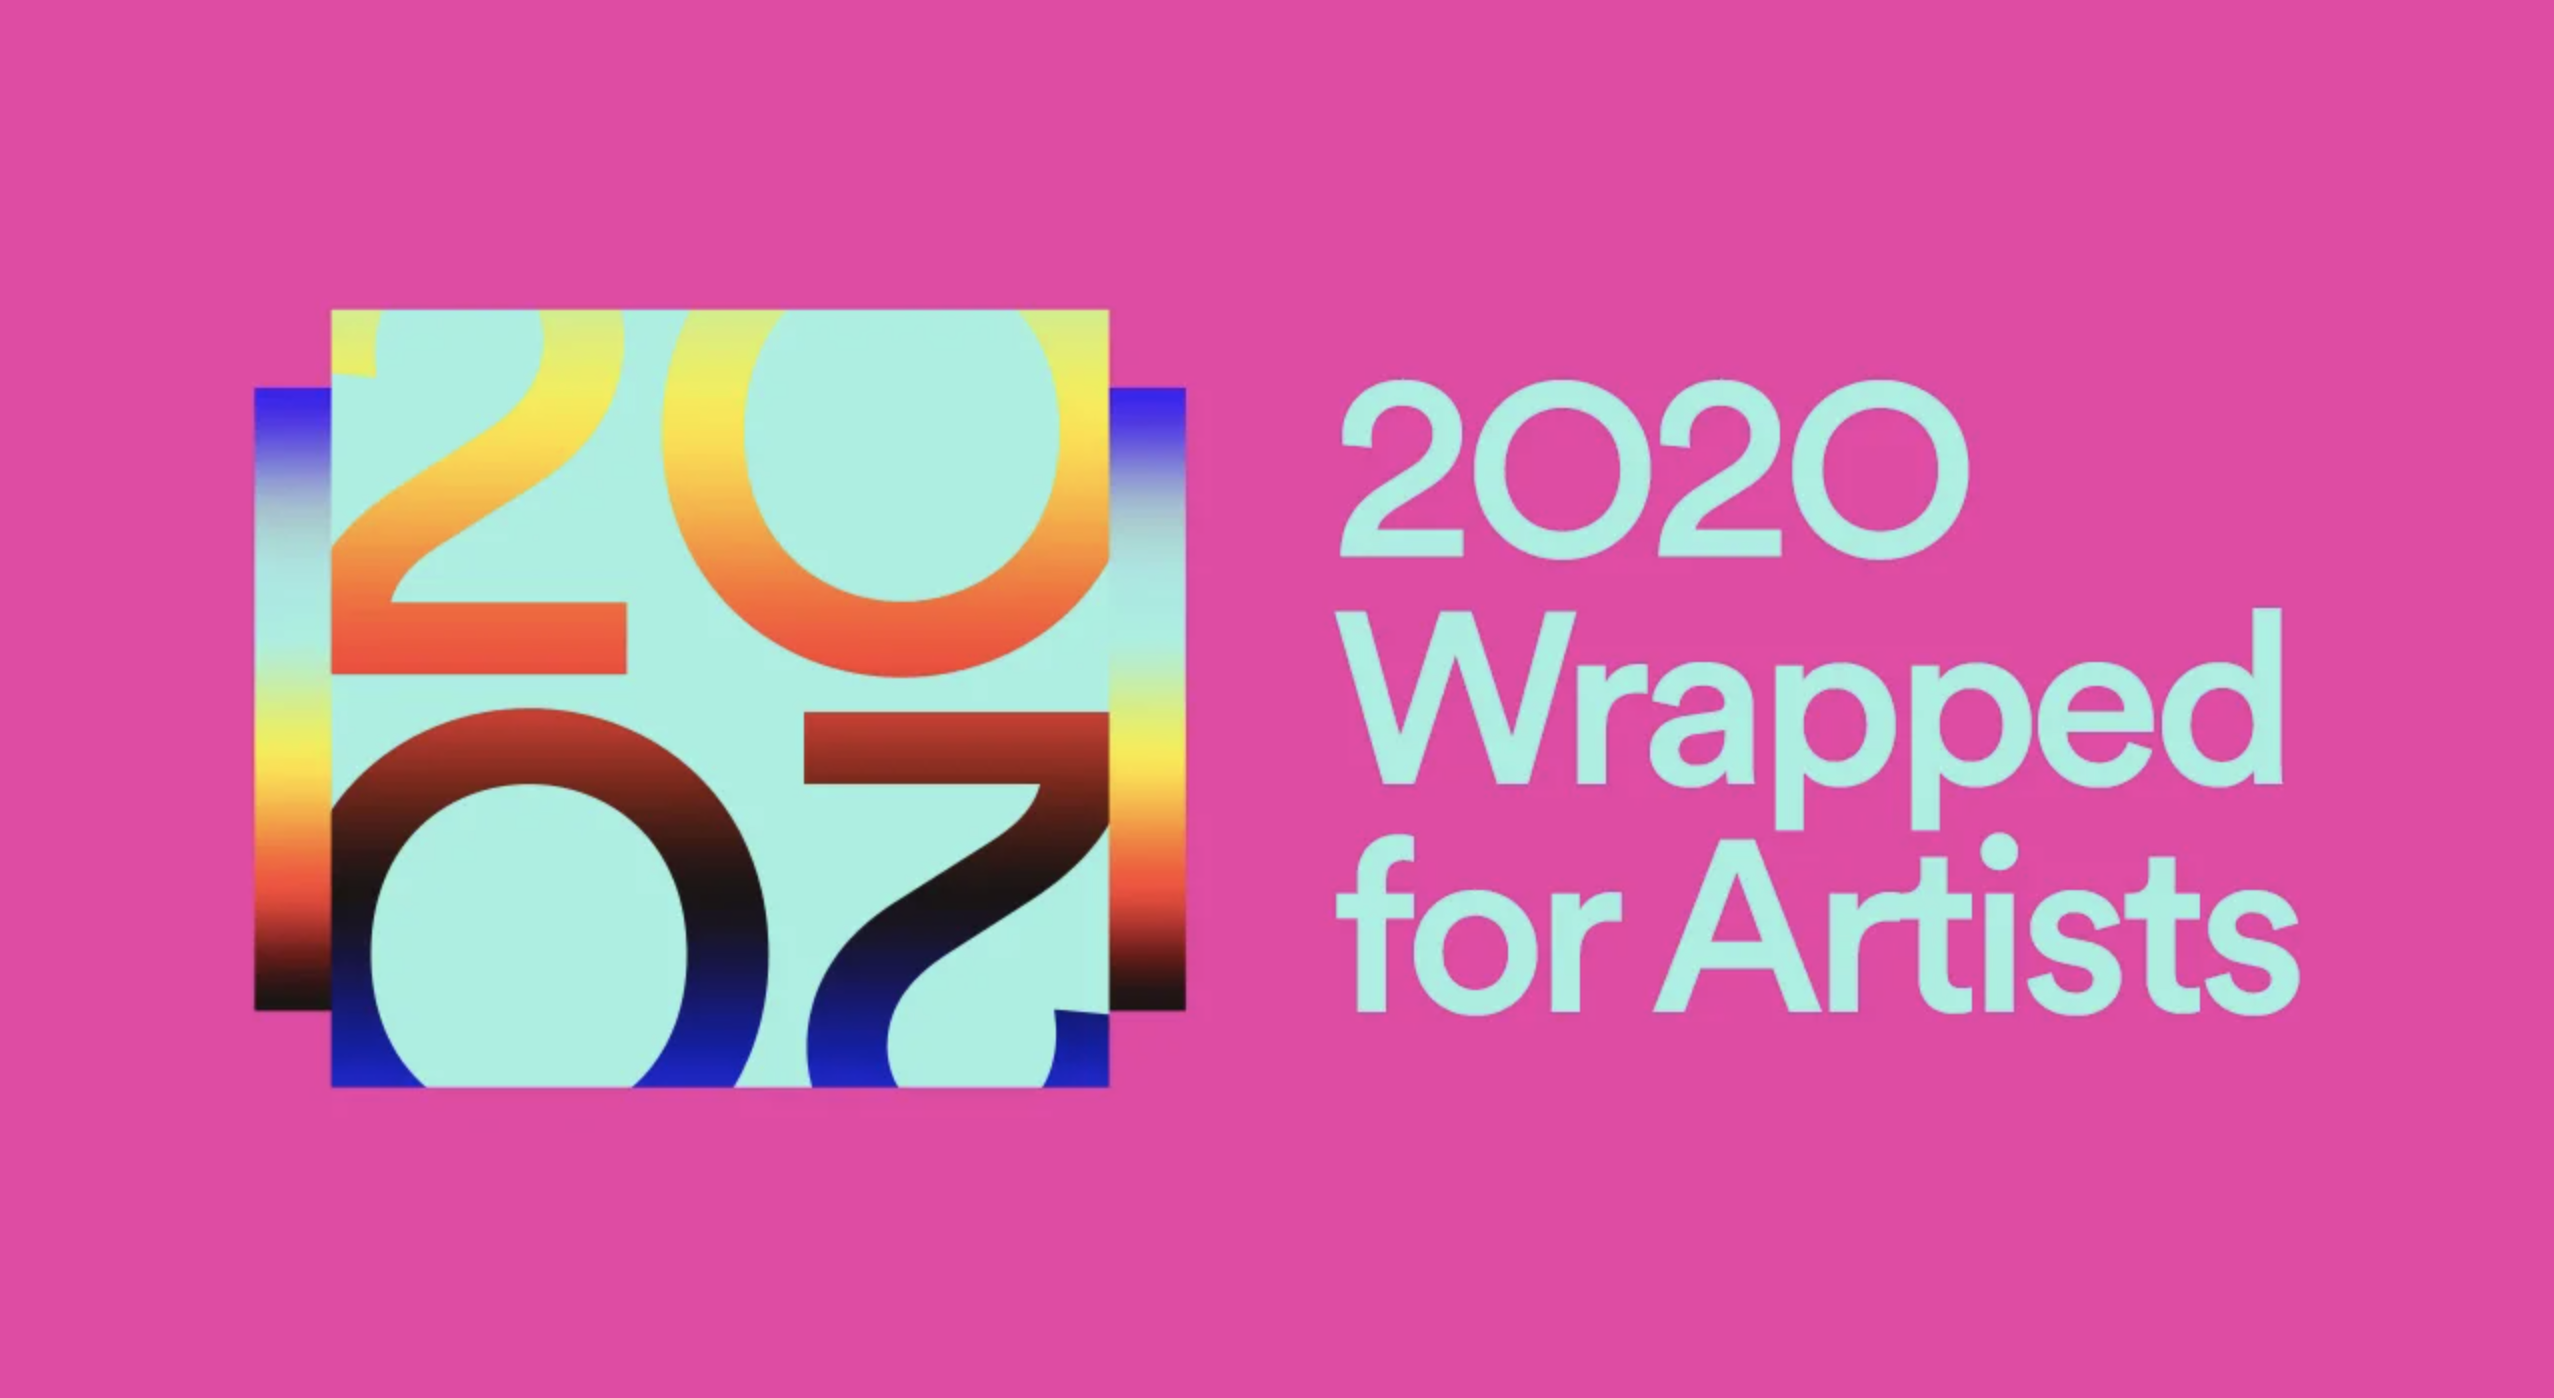 Spotify Wrapped For Artists 2020 Includes New Insights Haulix Daily